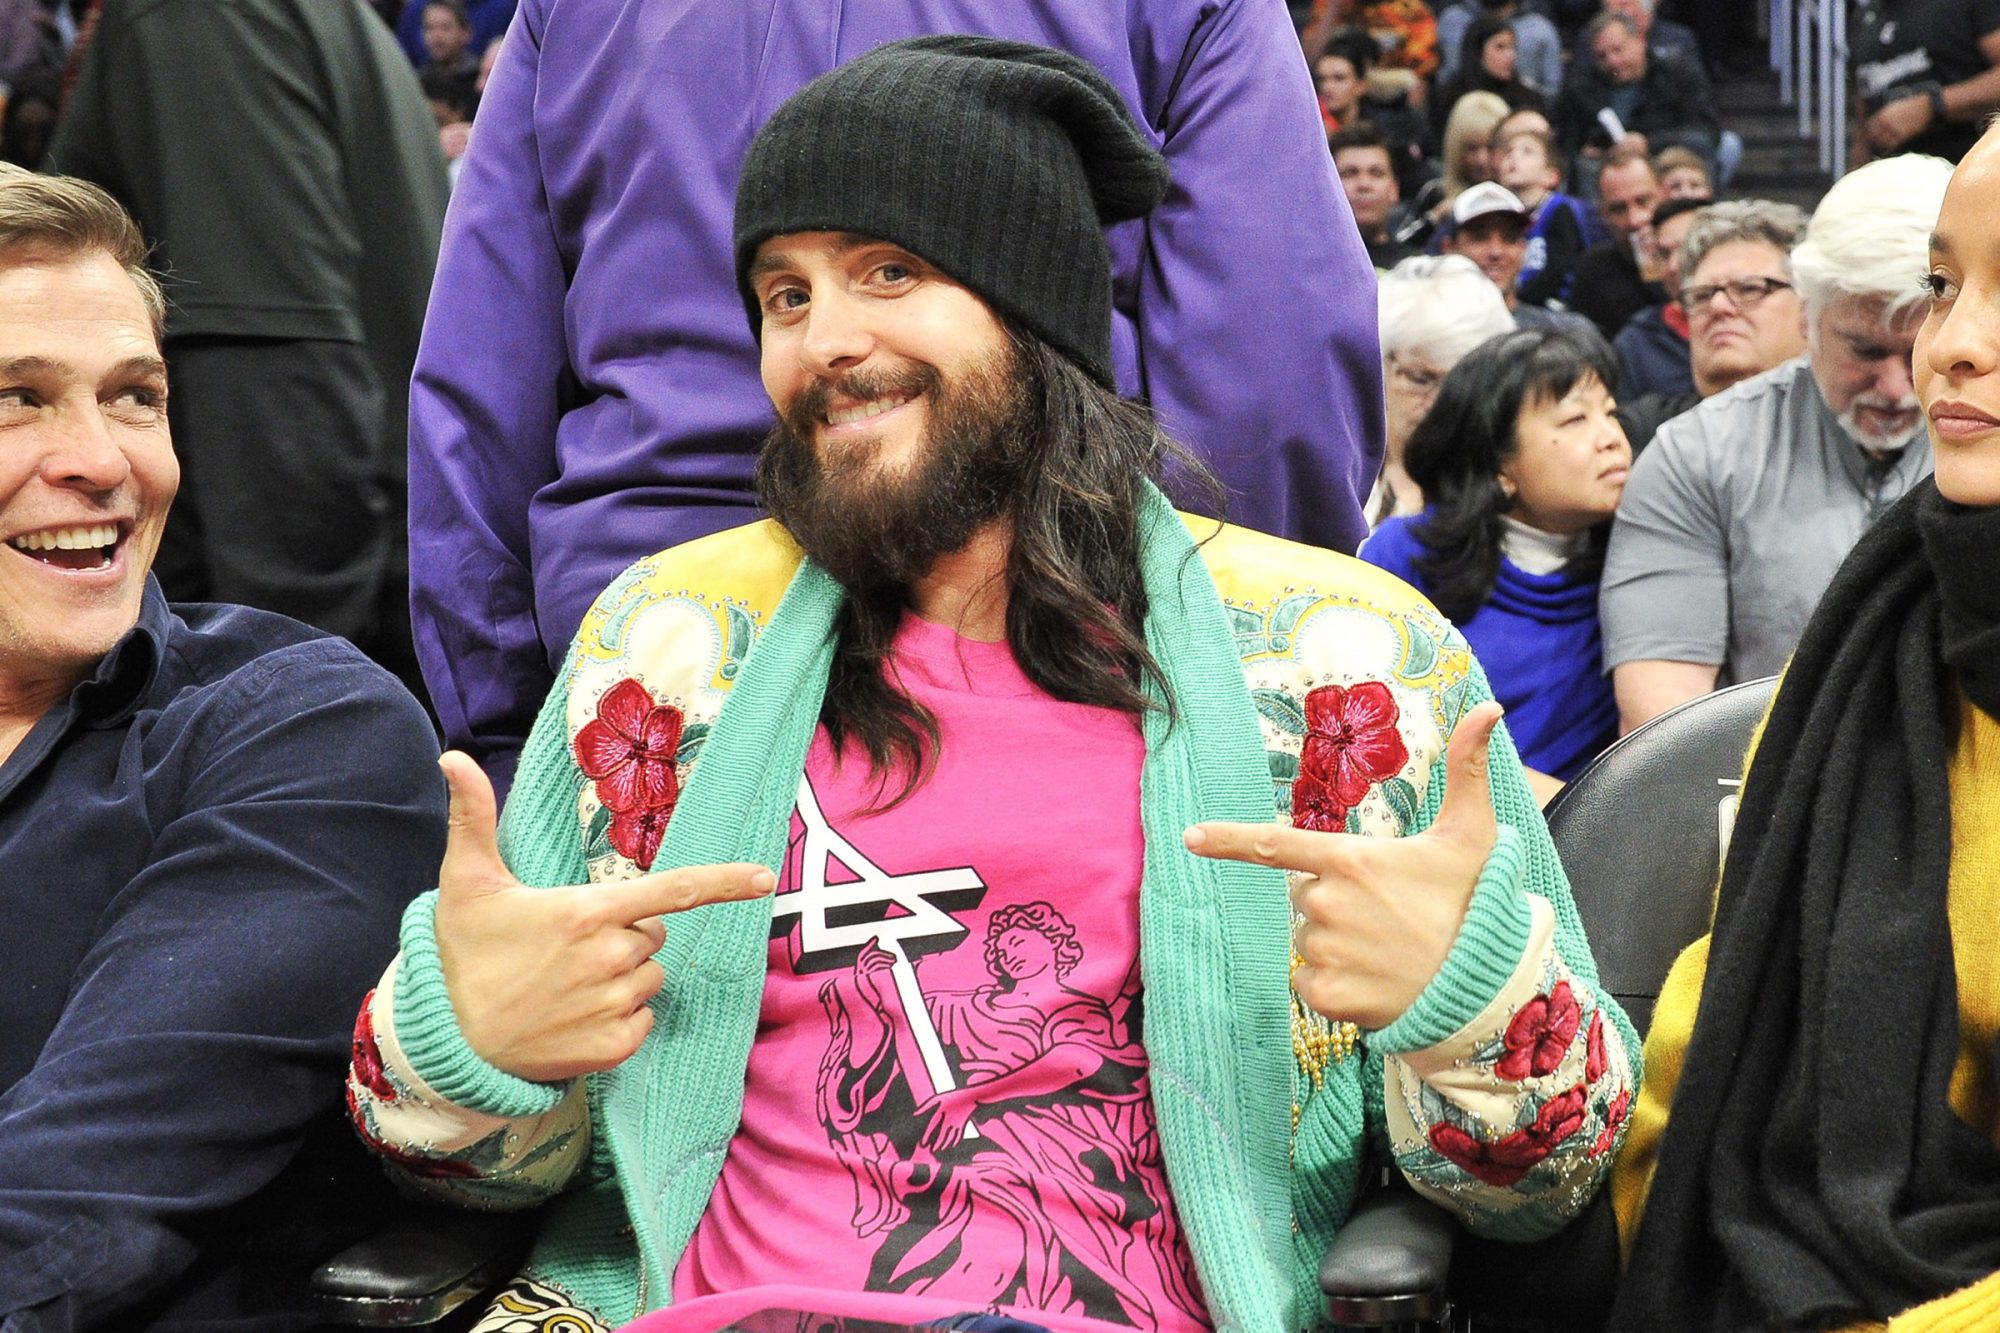 Jared Leto attends a basketball game between the Los Angeles Clippers and Portland Trail Blazers at Staples Center on December 03, 2019 in Los Angeles, California